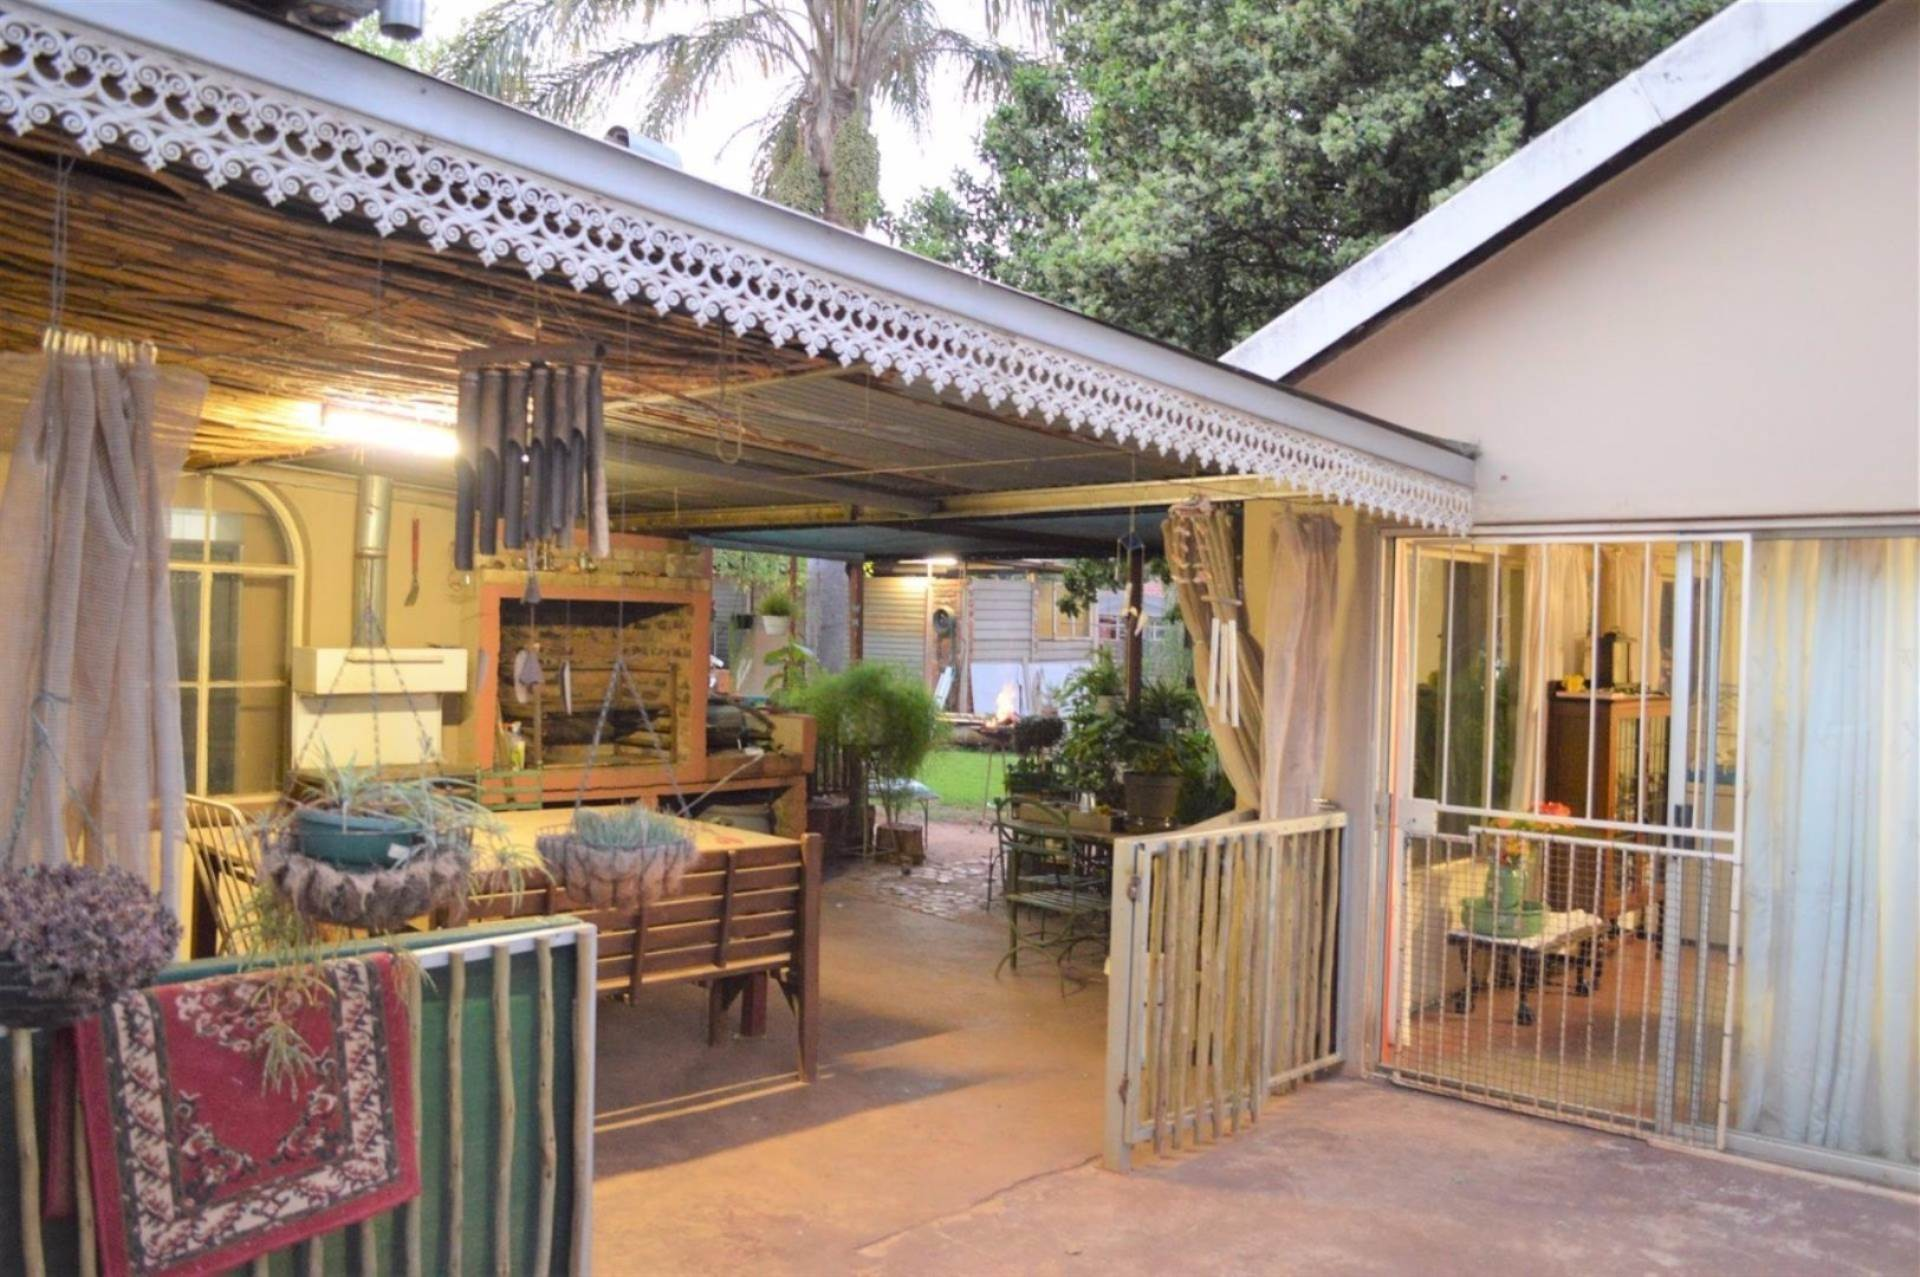 Property and Houses for sale in Hesteapark, House, 4 Bedrooms - ZAR 1,050,000